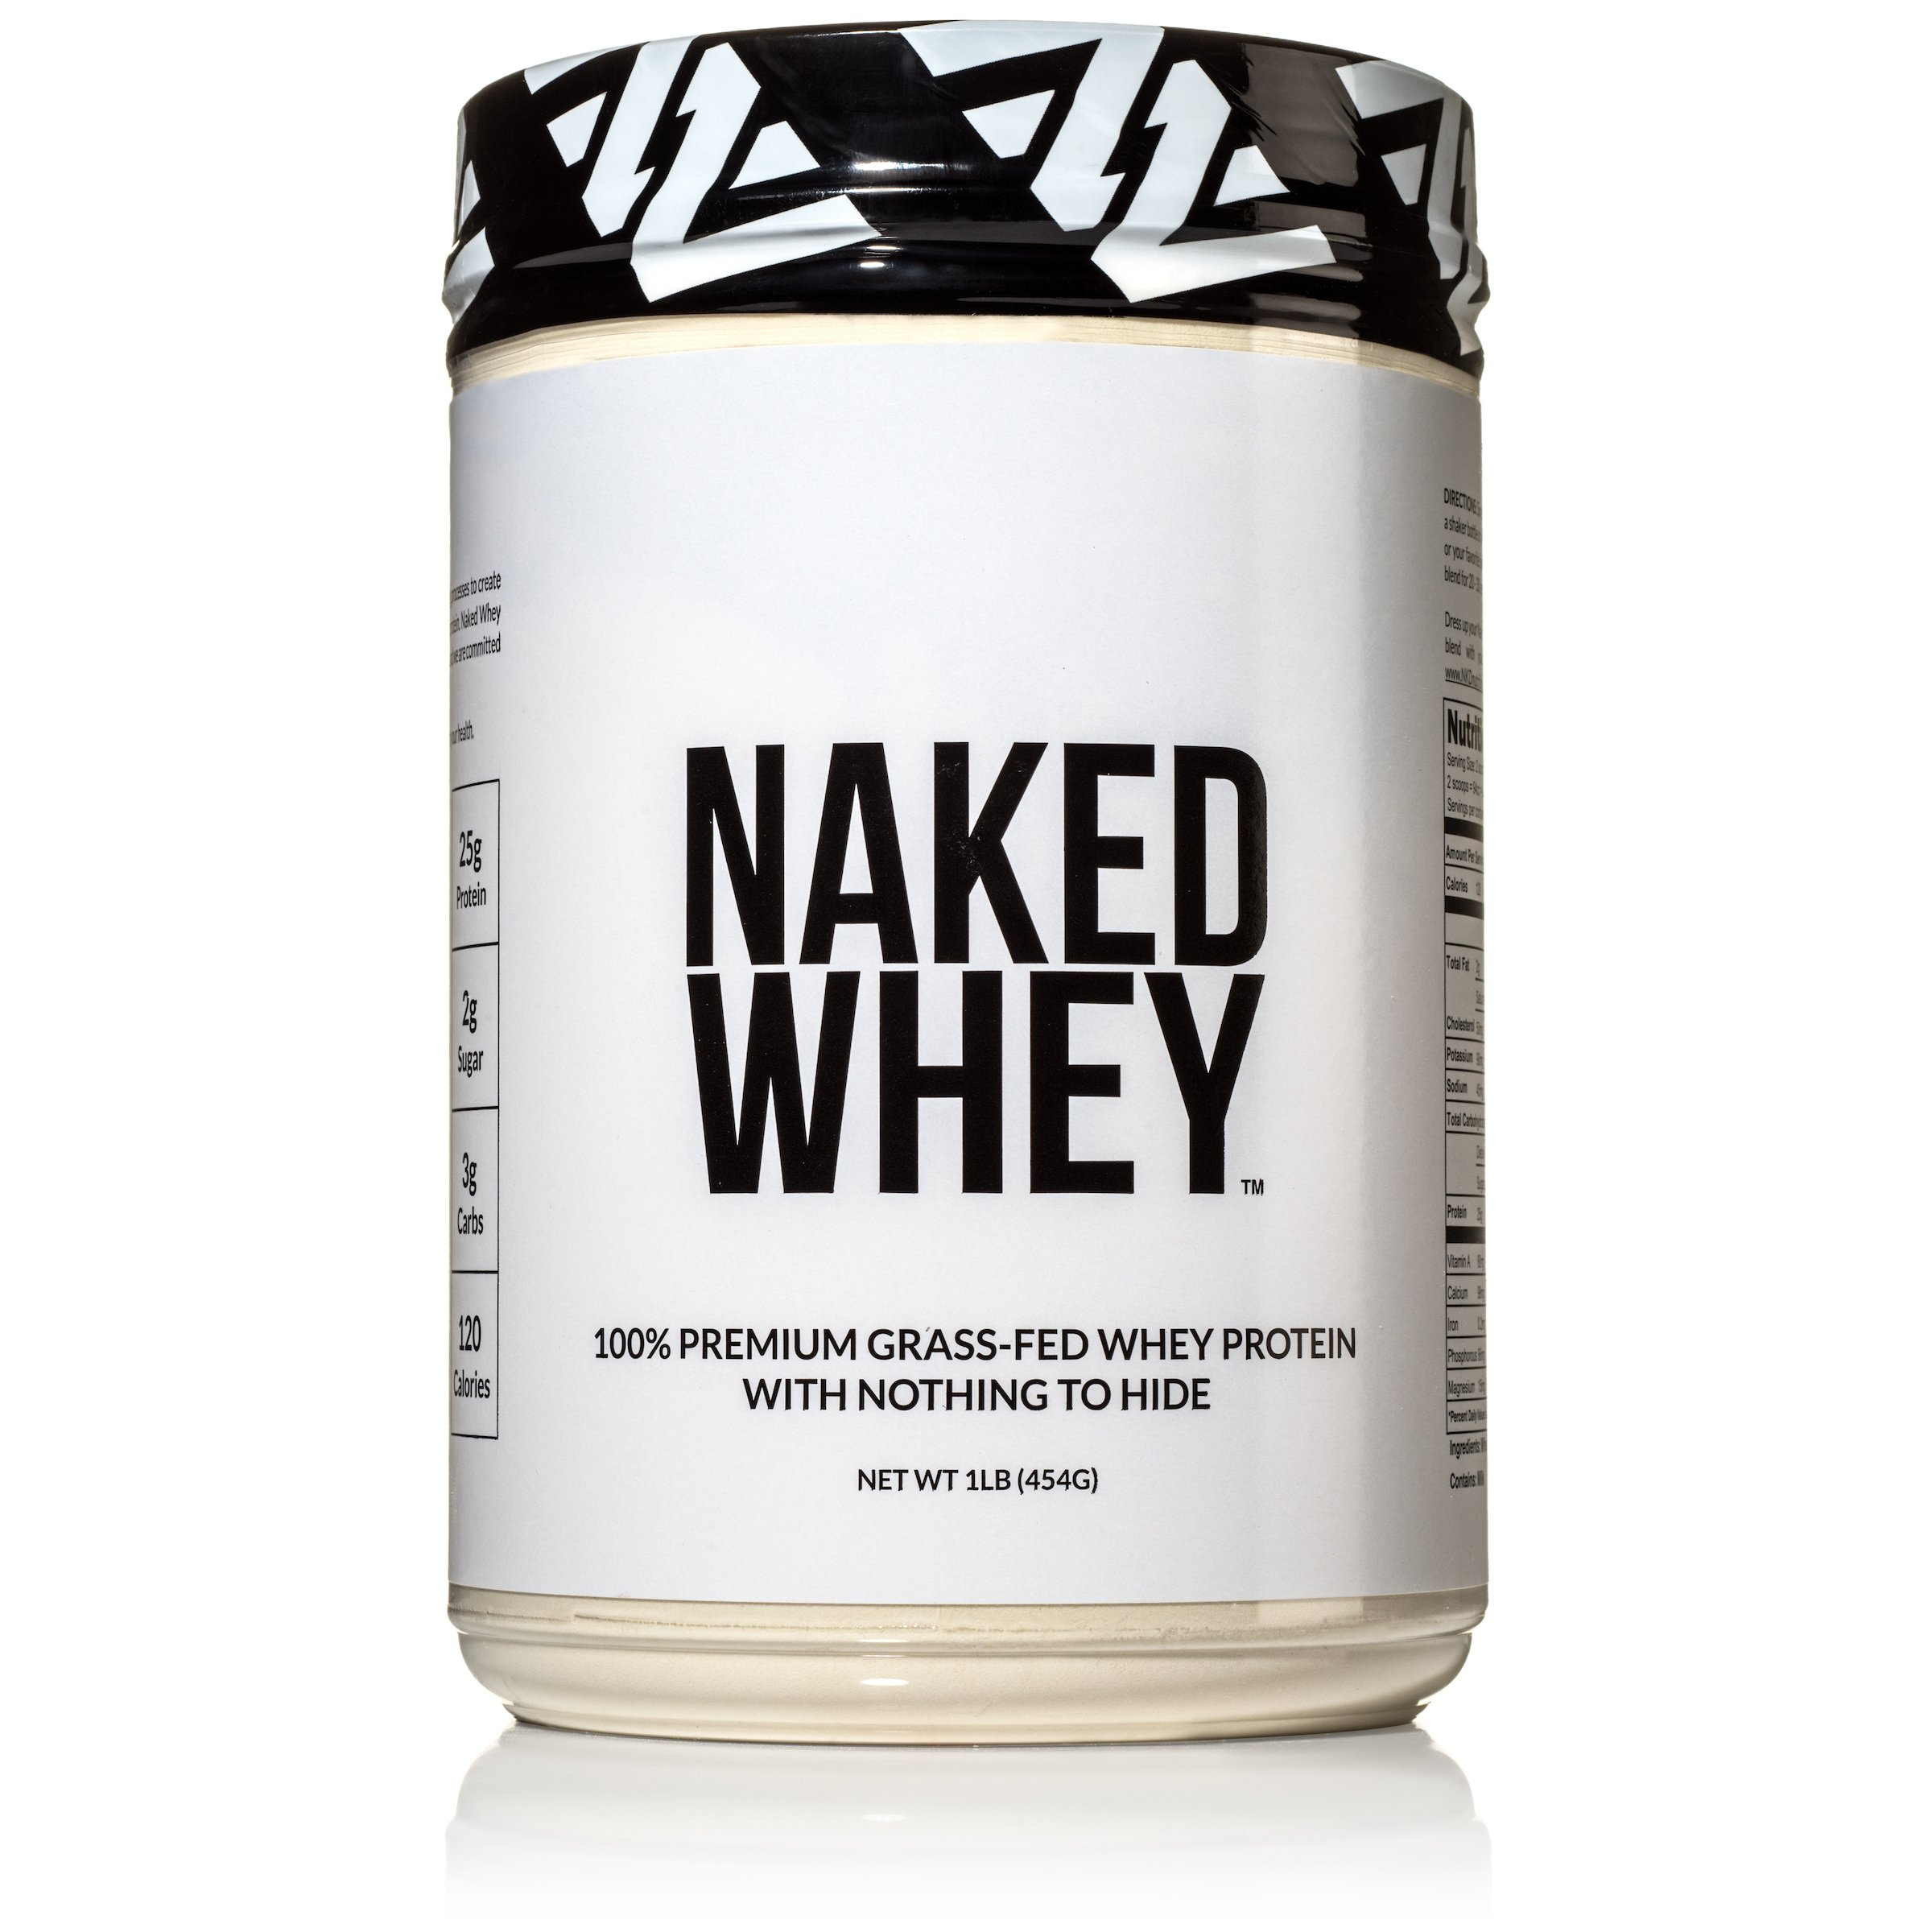 Naked WHEY 1LB 100% Grass Fed Unflavored Whey Protein Powder - US Farms, Only 1 Ingredient, Undenatured - No GMO, Soy or Gluten - No Preservatives - Promote Muscle Growth and Recovery - 15 Servings by NAKED nutrition